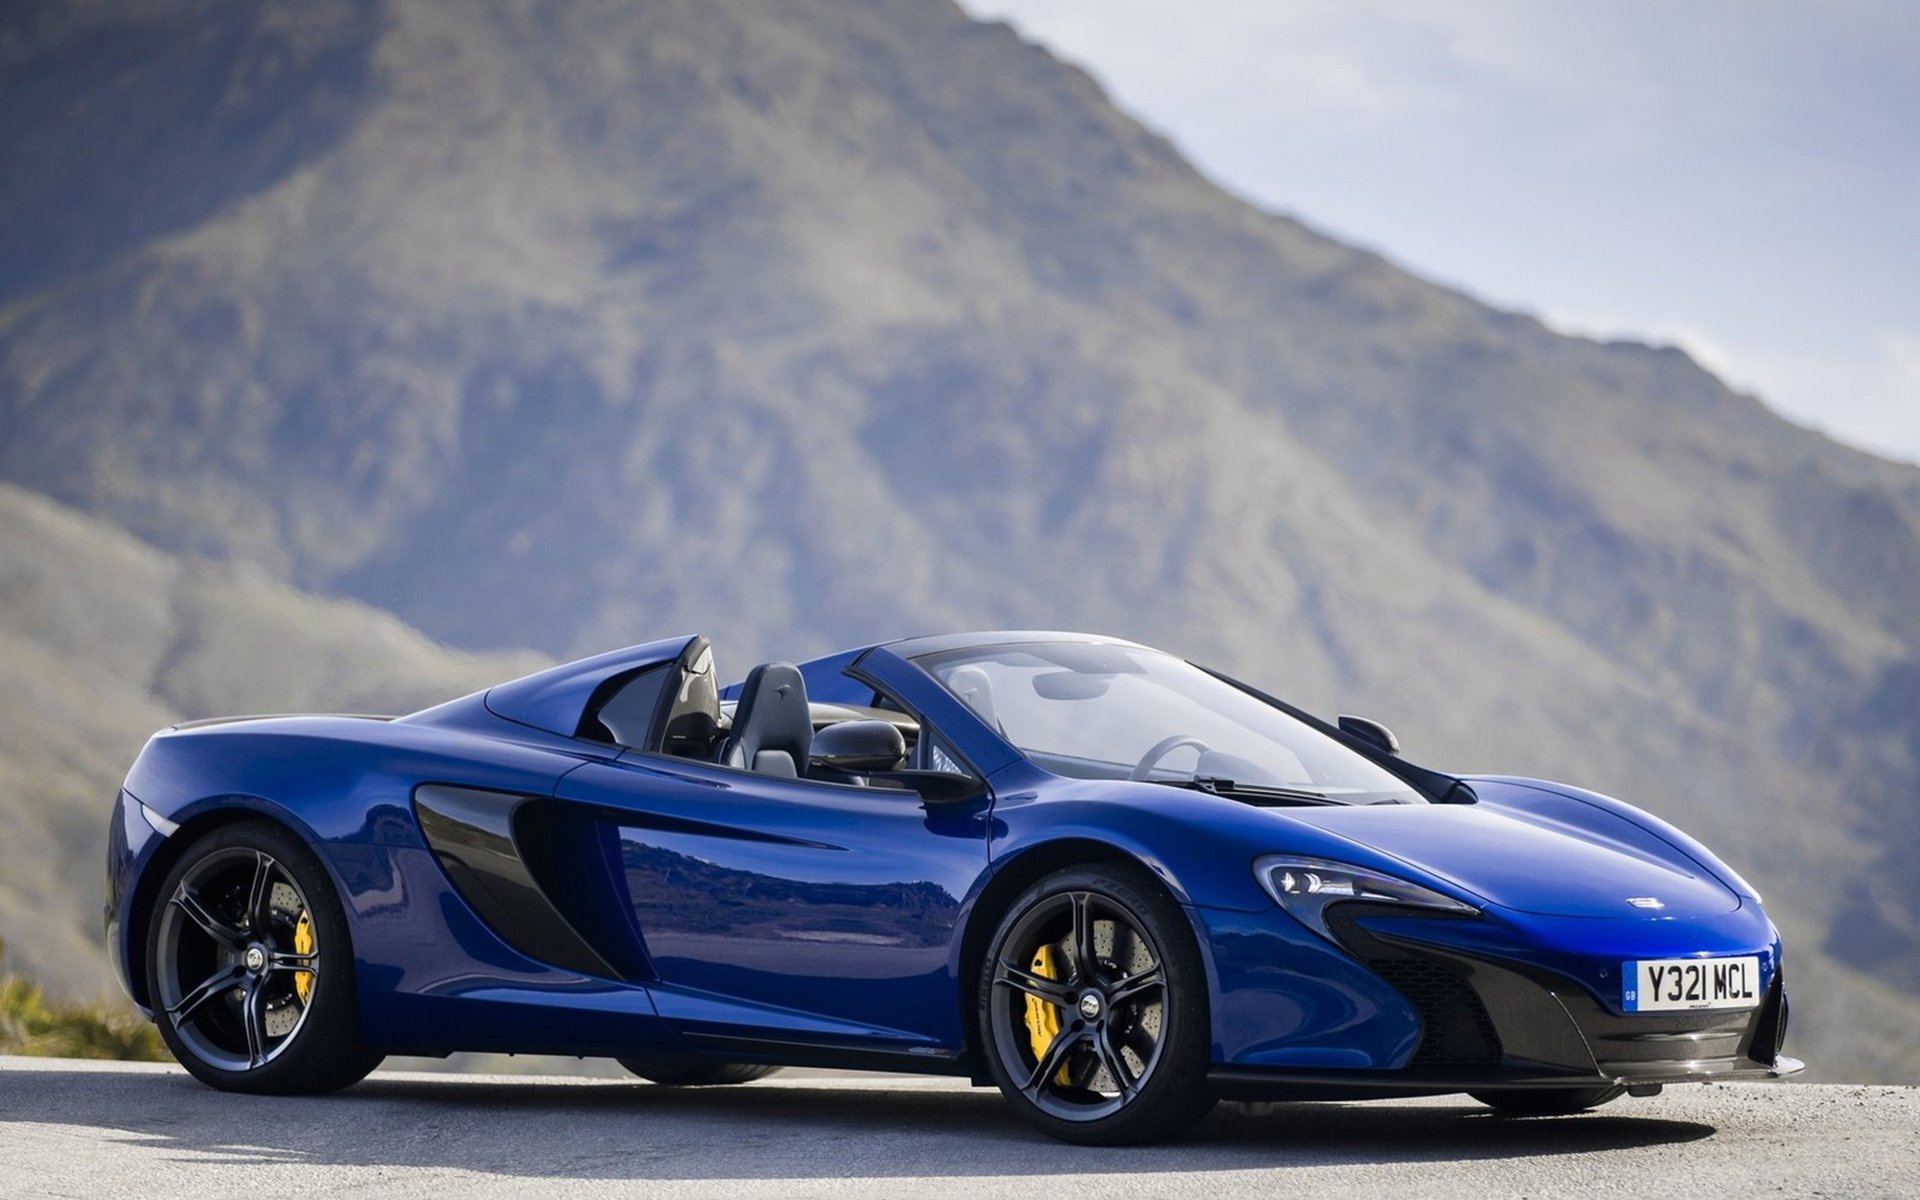 2015 McLaren 650S Convertible Supercar Wallpaper   HD 1920x1200